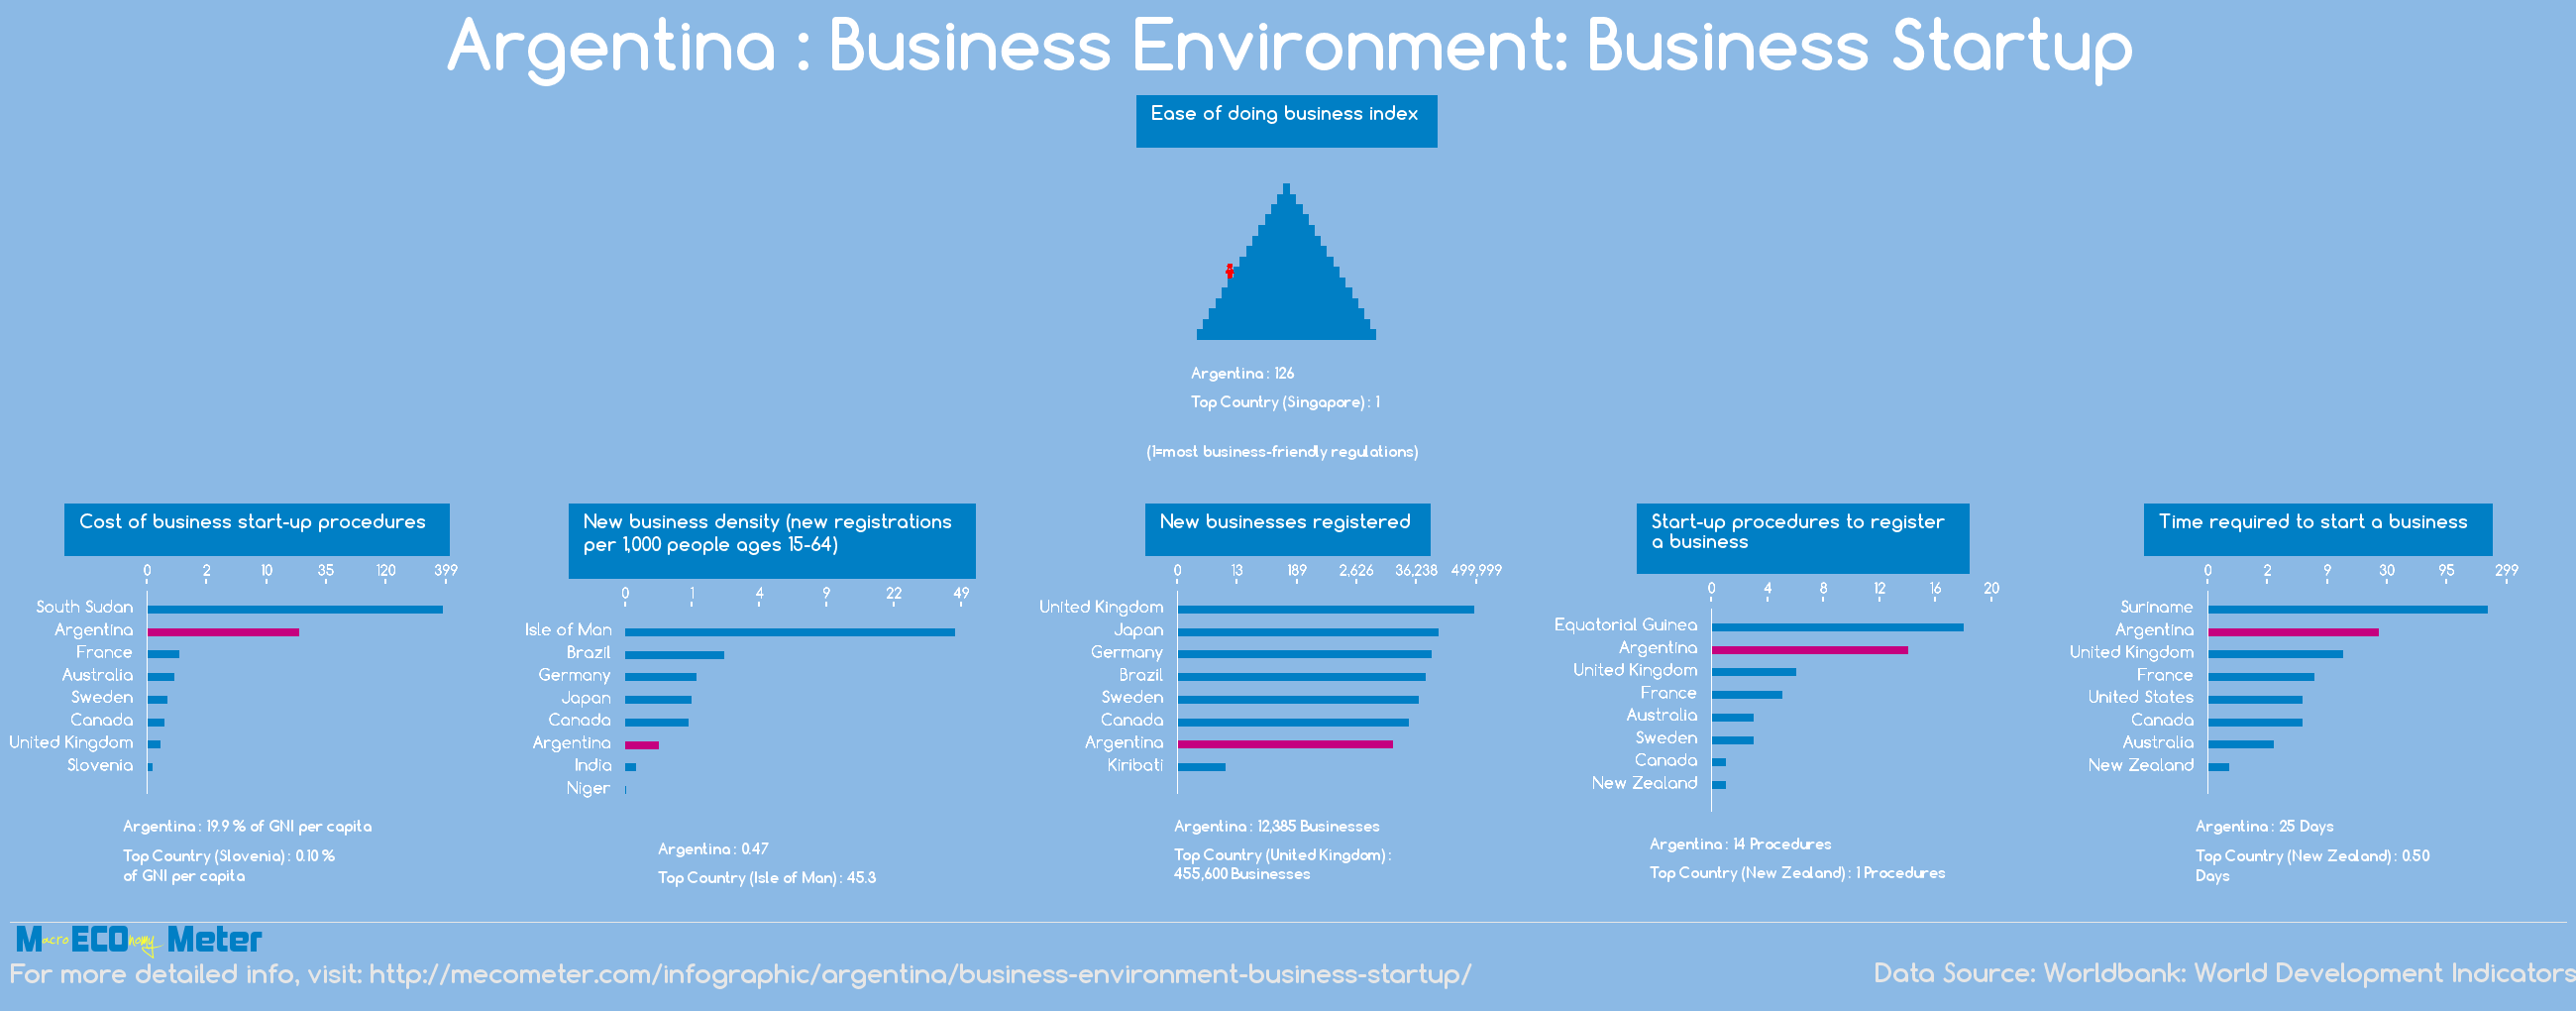 Argentina : Business Environment: Business Startup